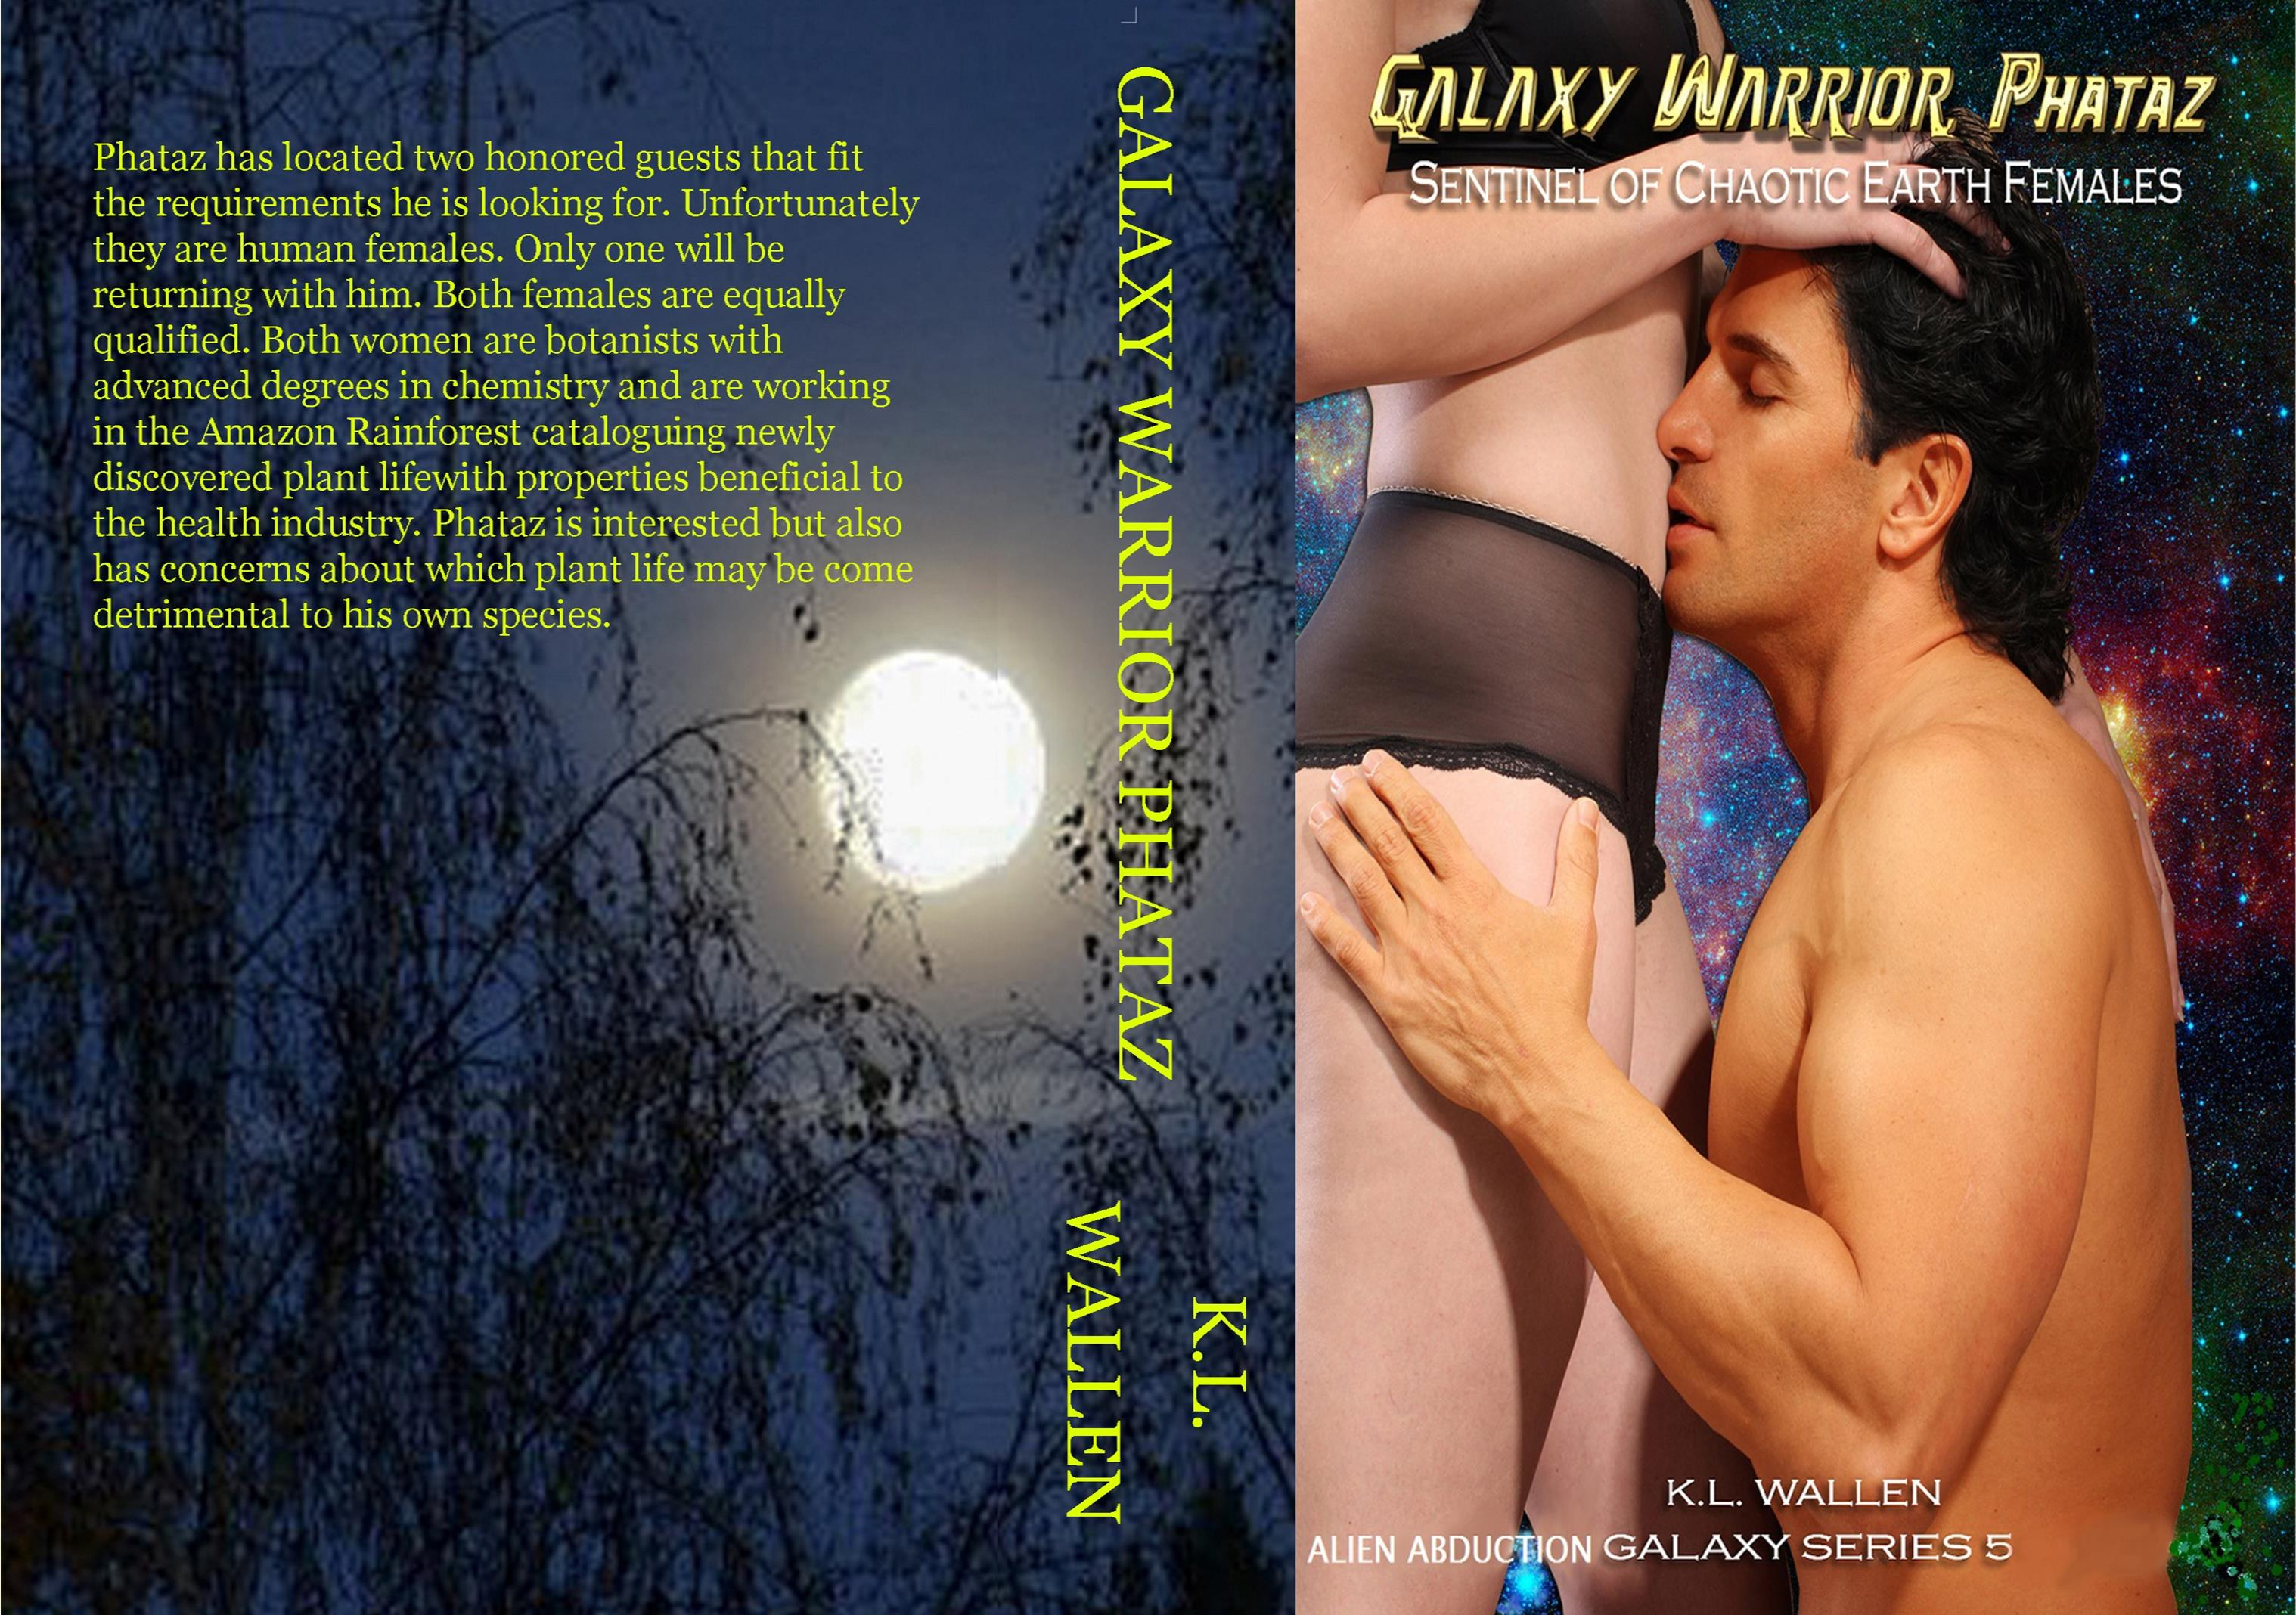 Galaxy Warrior Phataz cover image